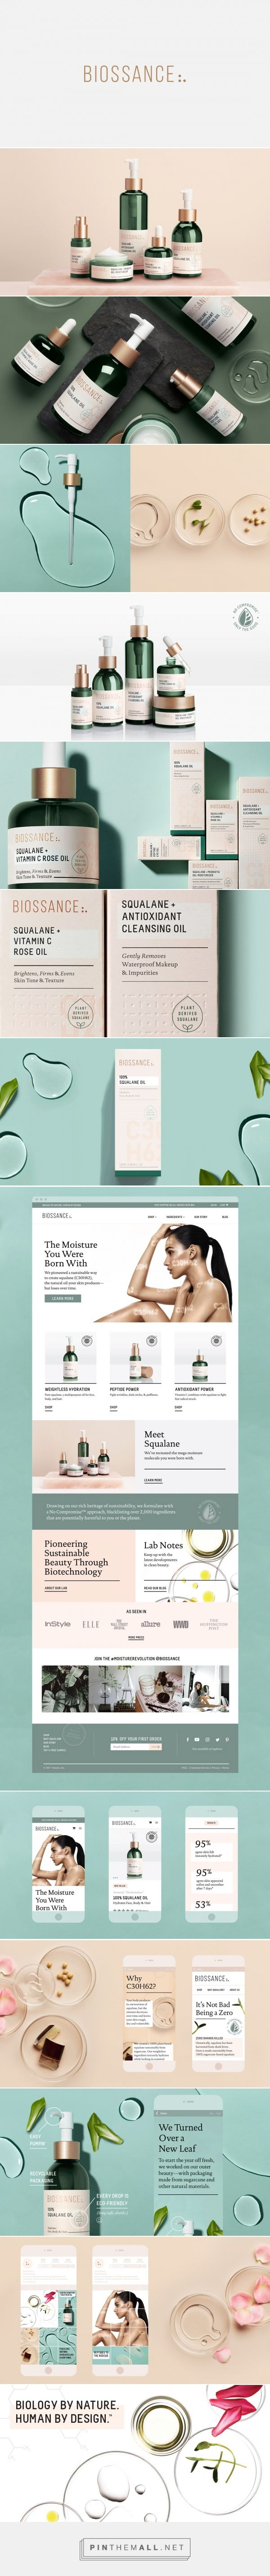 Biossance Skincare Branding, Packaging, and Web Design by Bartlett Brands | Fivestar Branding Agency – Design and Branding Agency & Curated Inspiration Gallery